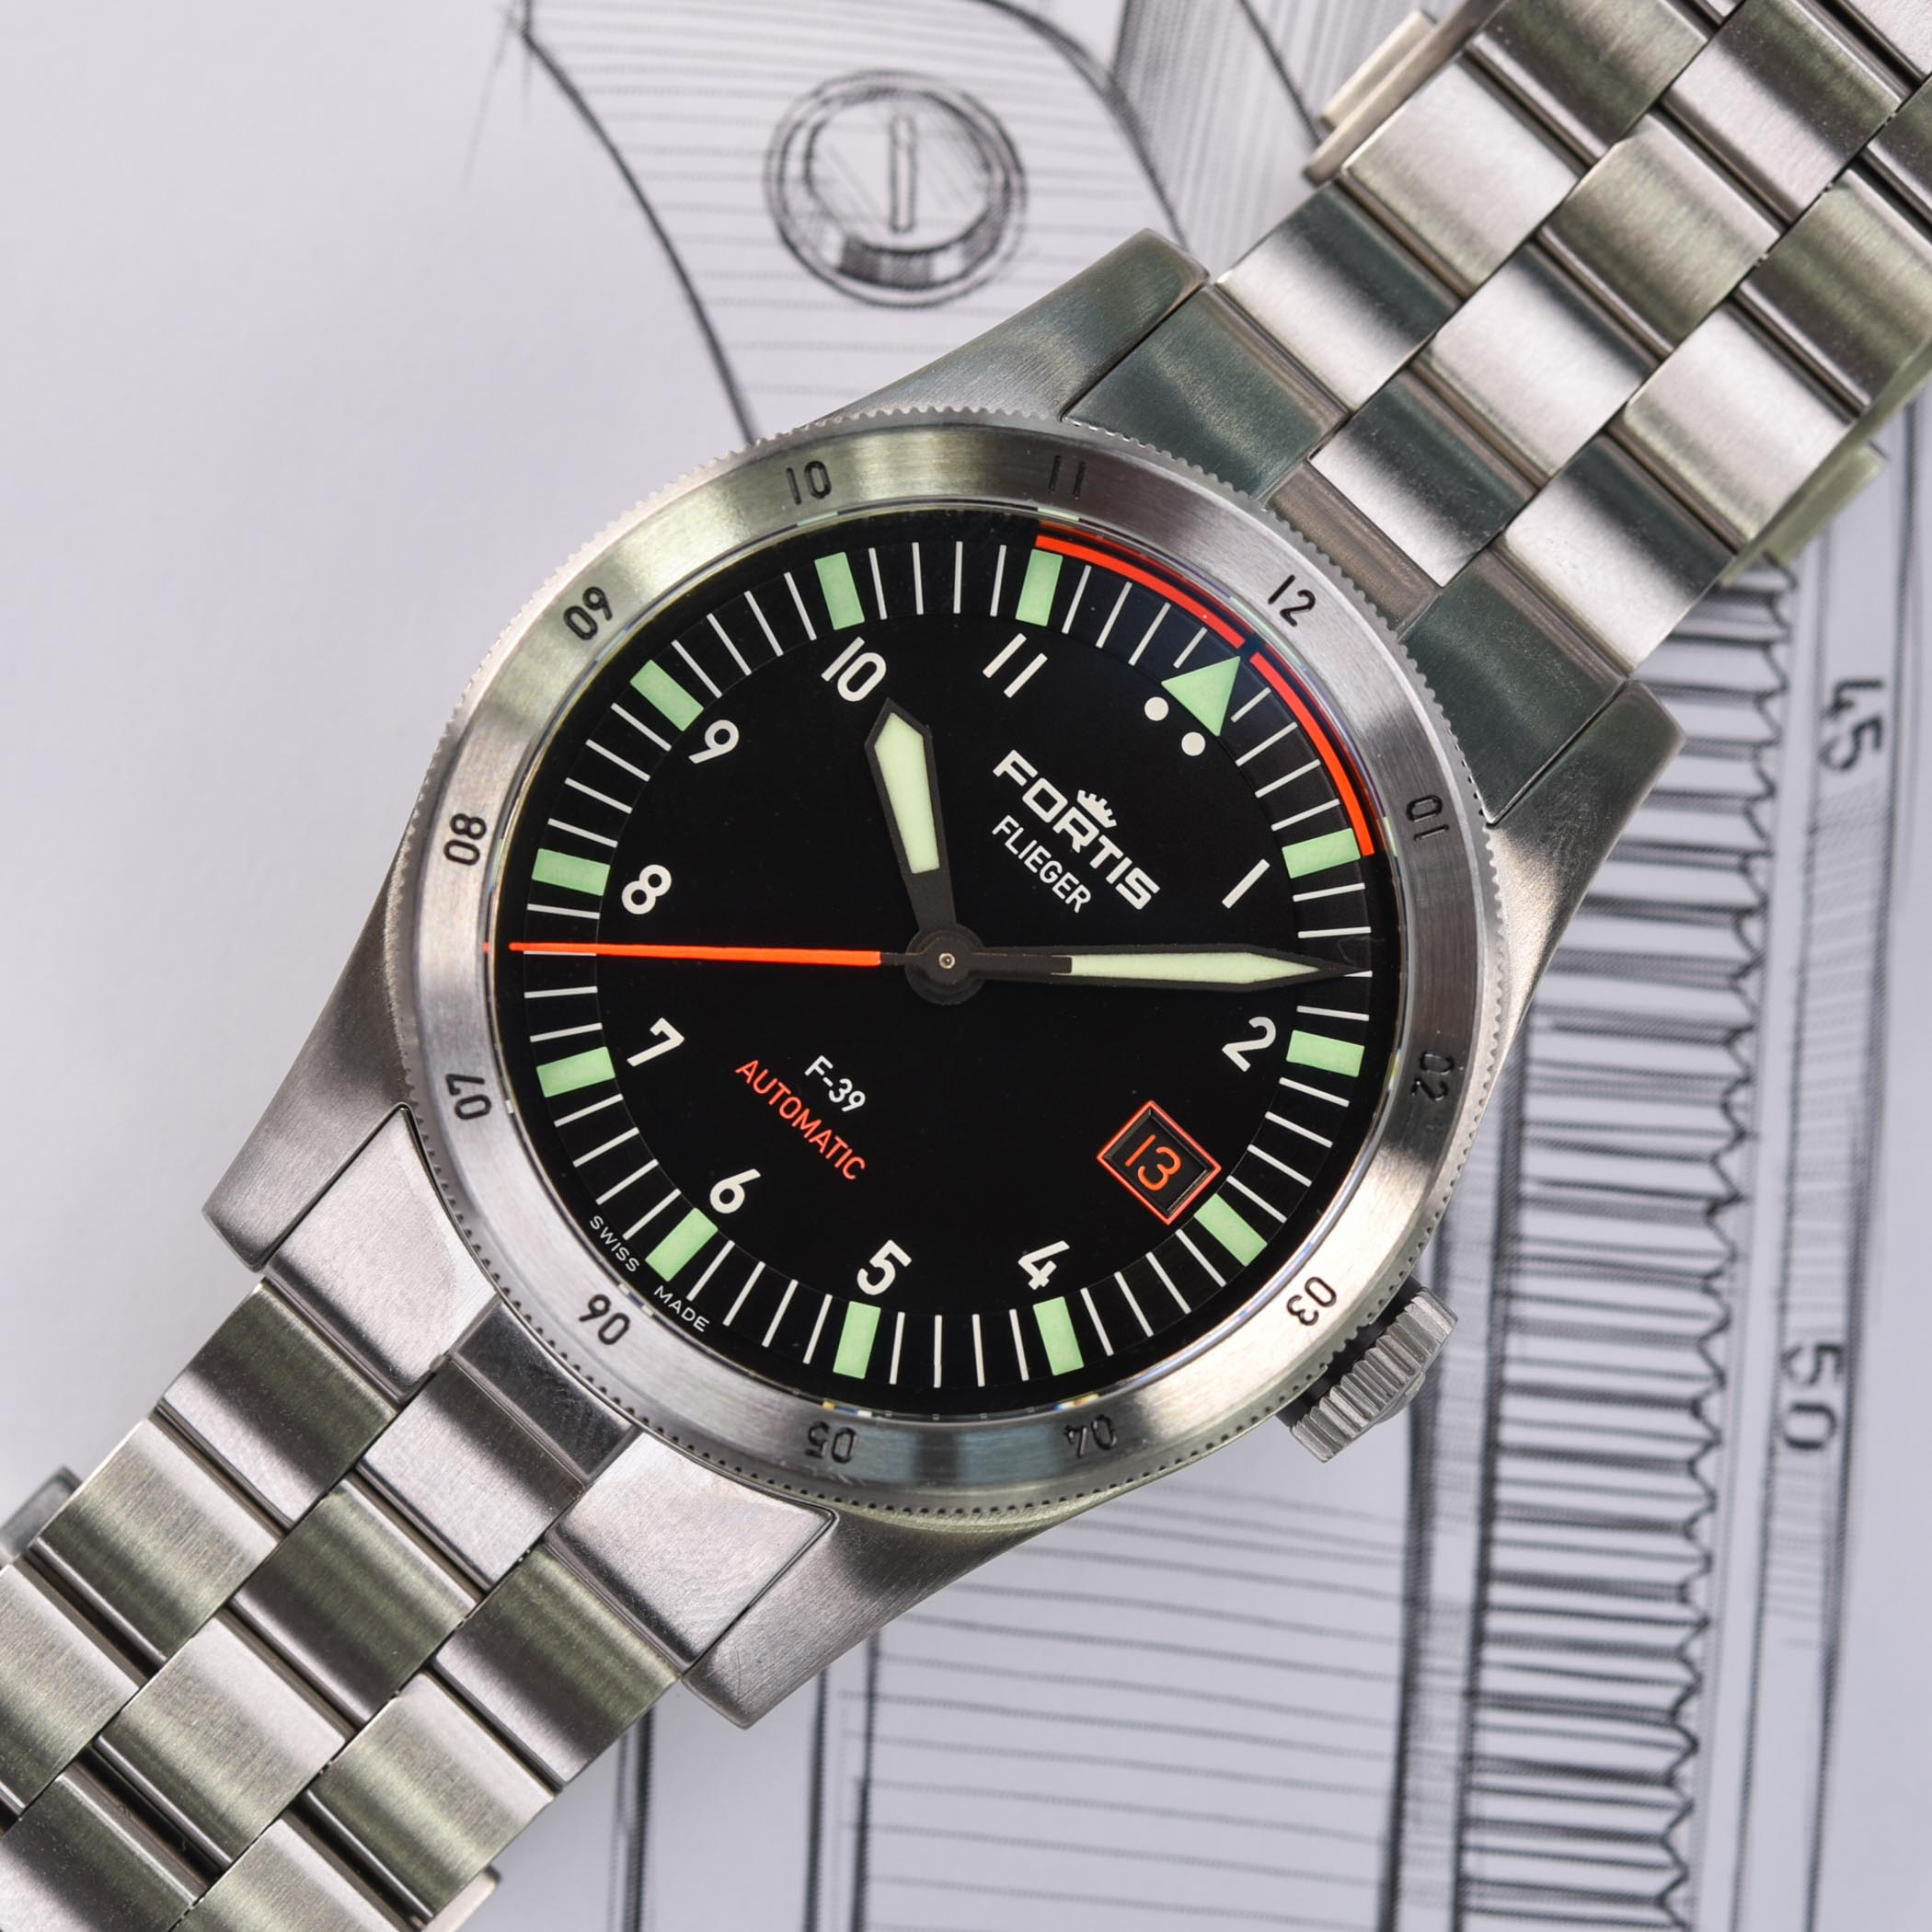 Fortis Flieger F-41 Automatic - Fortis Flieger F-39 Automatic - 9